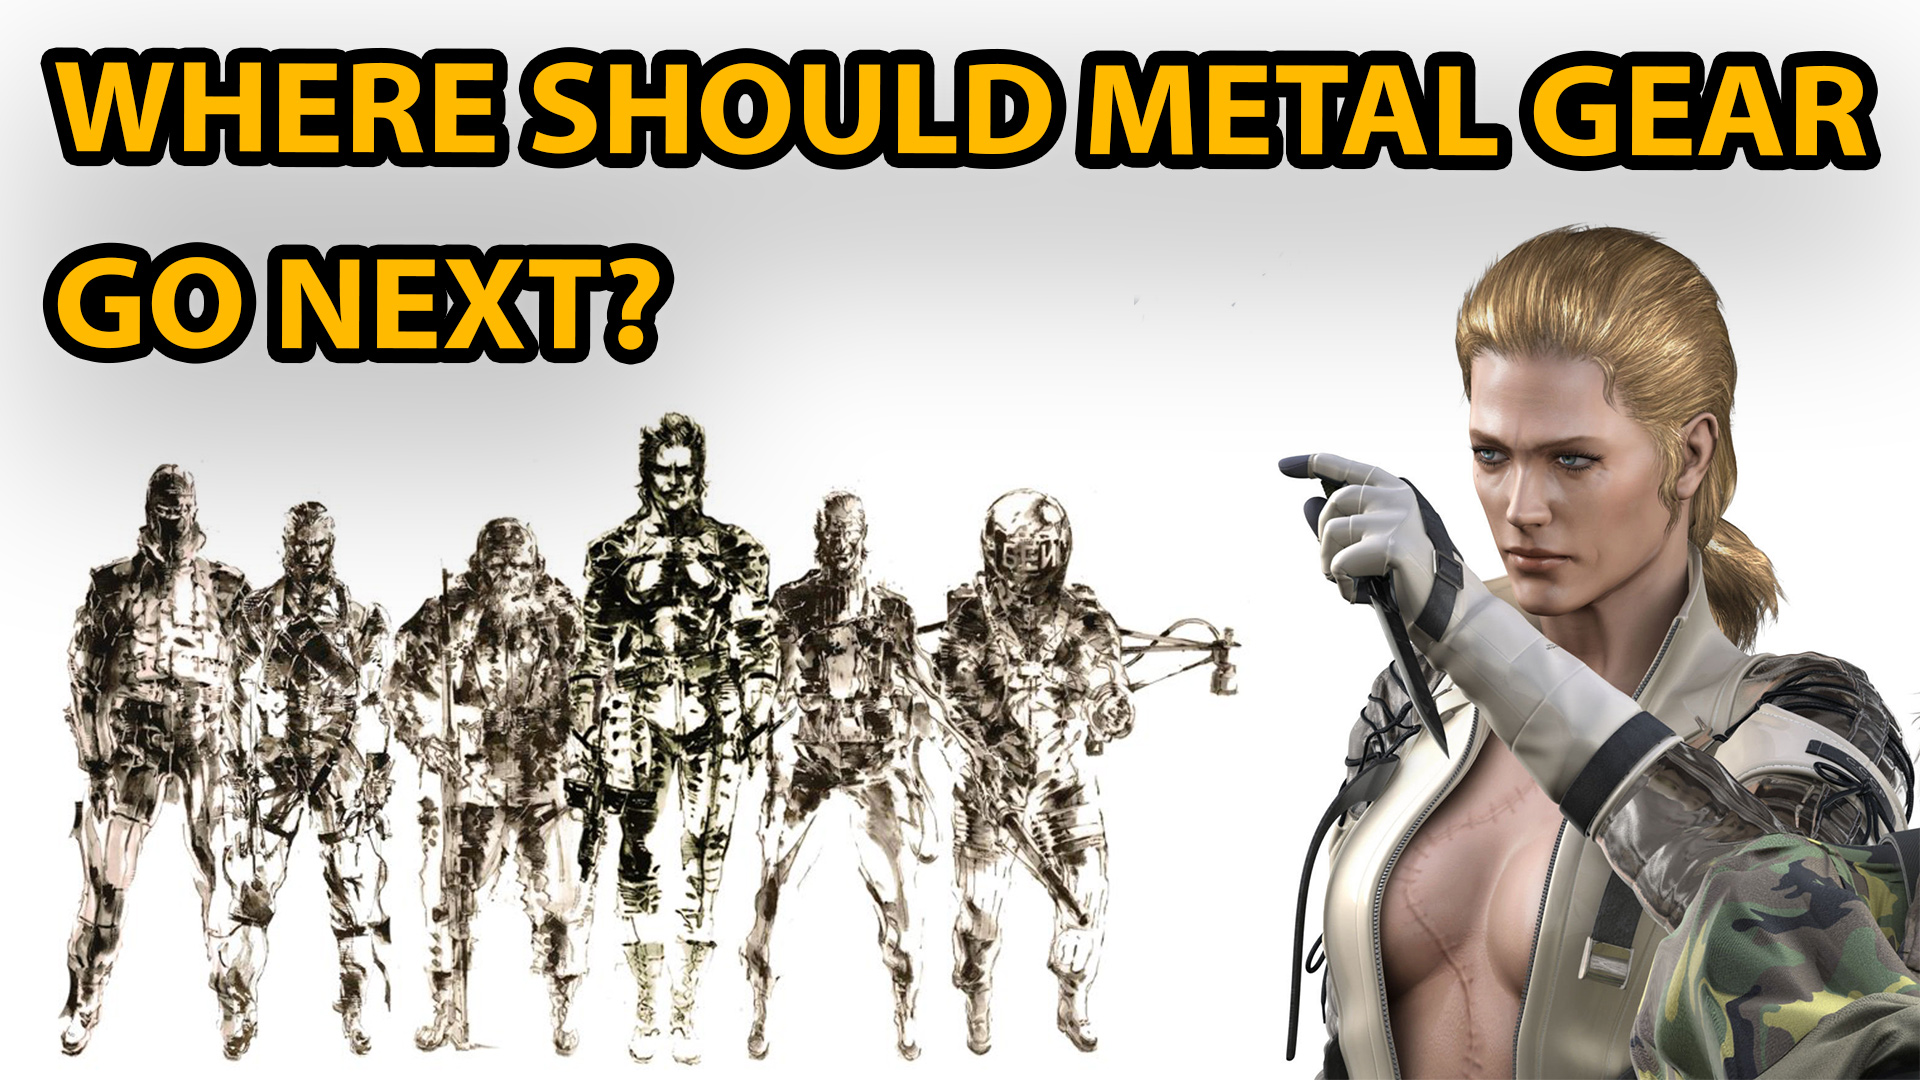 metal gear, metal gear solid, metal gear solid 6, the boss, konami, hideo kojima, metal gear survive, sequel